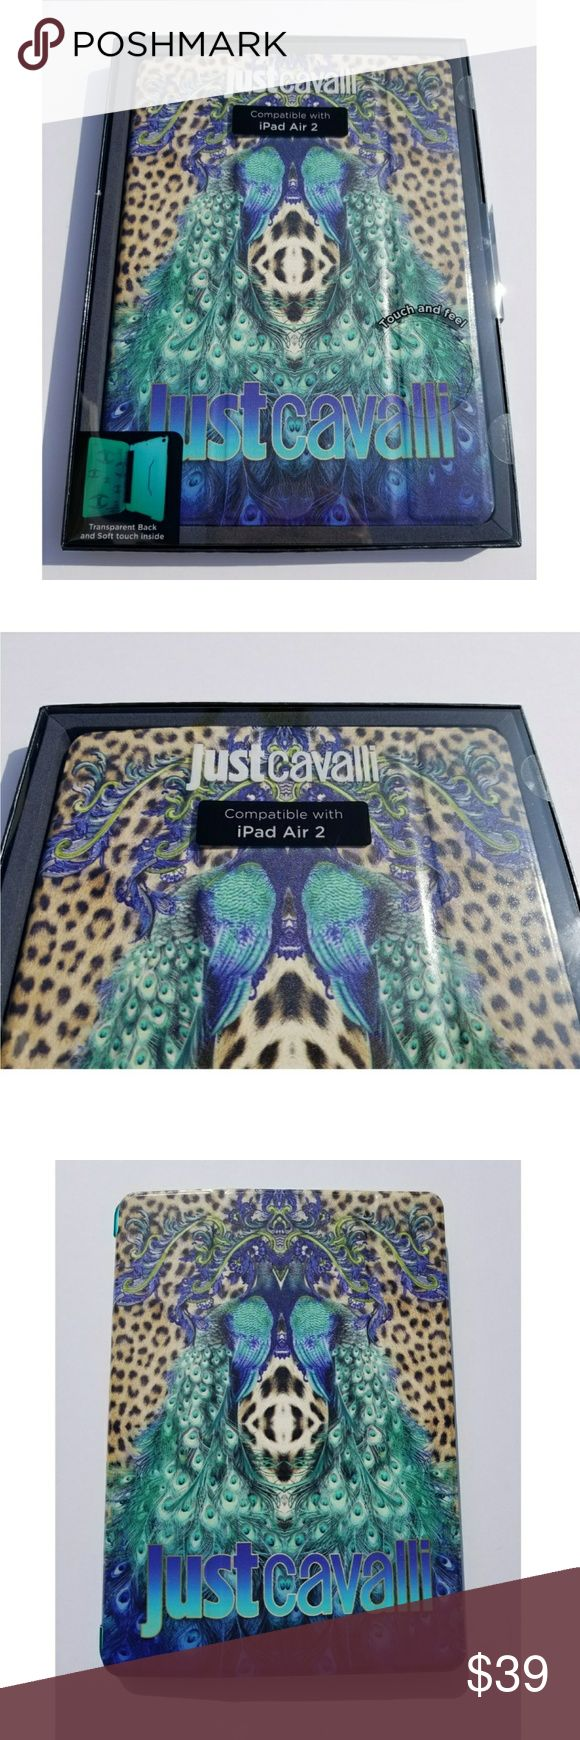 Just Cavalli Case iPad Air 2 Model Leopard Peacock Gorgeous 100% genuine Just Cavalli leopard peacock design Ipad air case. Ultra slim magnetic smart front cover and smooth transparent ultra slim protective hard back case. Soft touch inside cover. Auto wake/sleep function the Ipad automatically goes to sleep mode when you shut the front cover and restarts when you open itagain. Metal Just Cavalli logo on the front cover.BRAND NEW in a sealed box 100% GENUINE!! *All sales are final! So I'll…